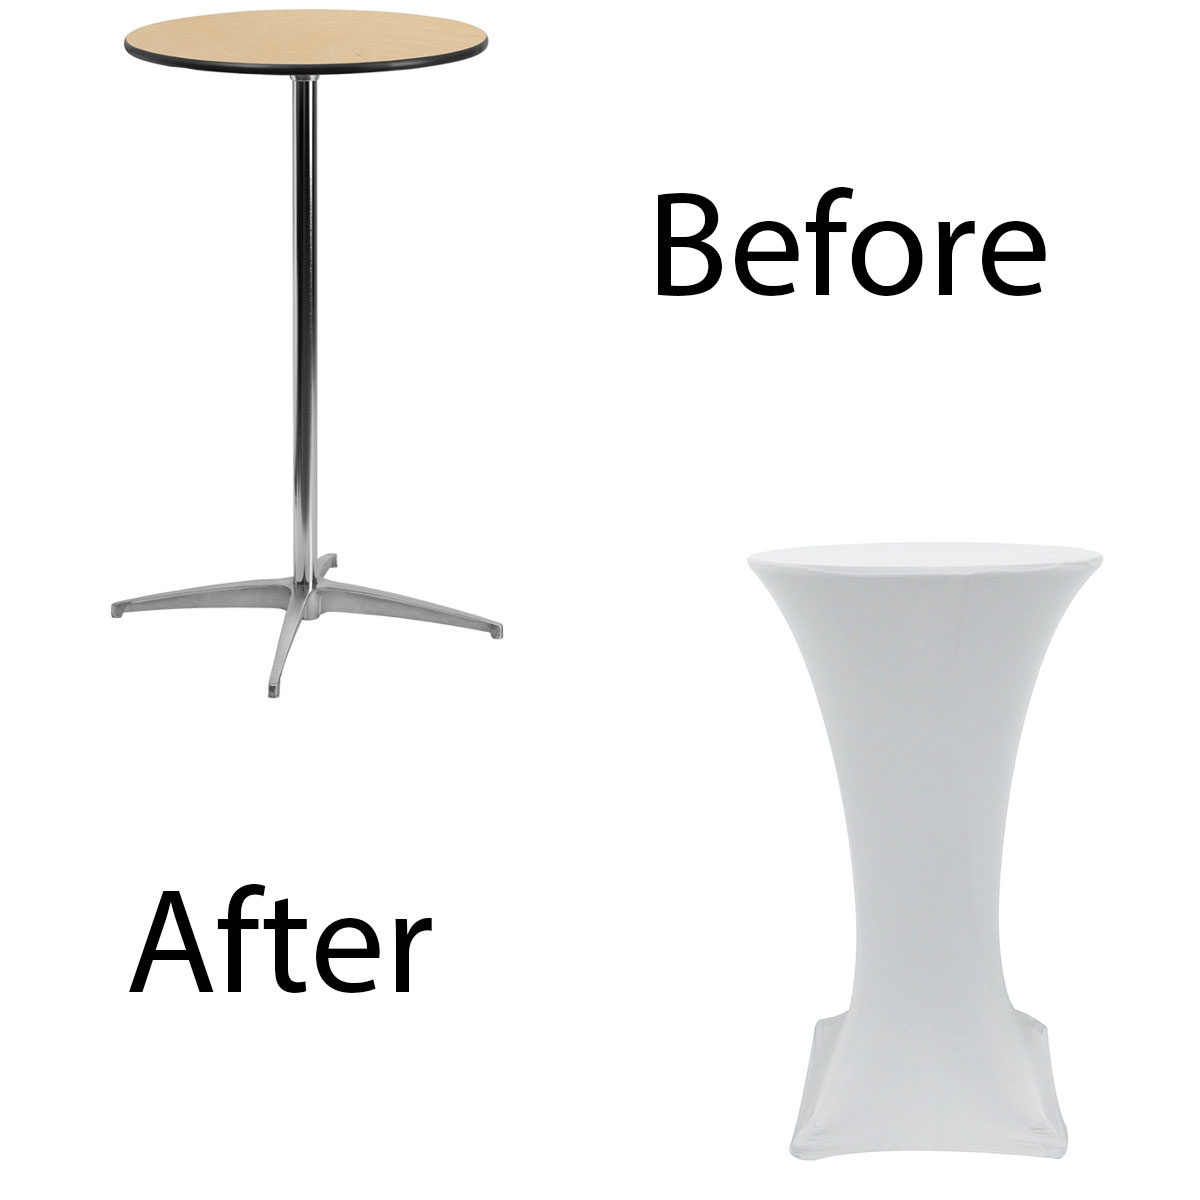 24-inch-highboy-cocktail-spandex-table-covers-white-before-after.jpg